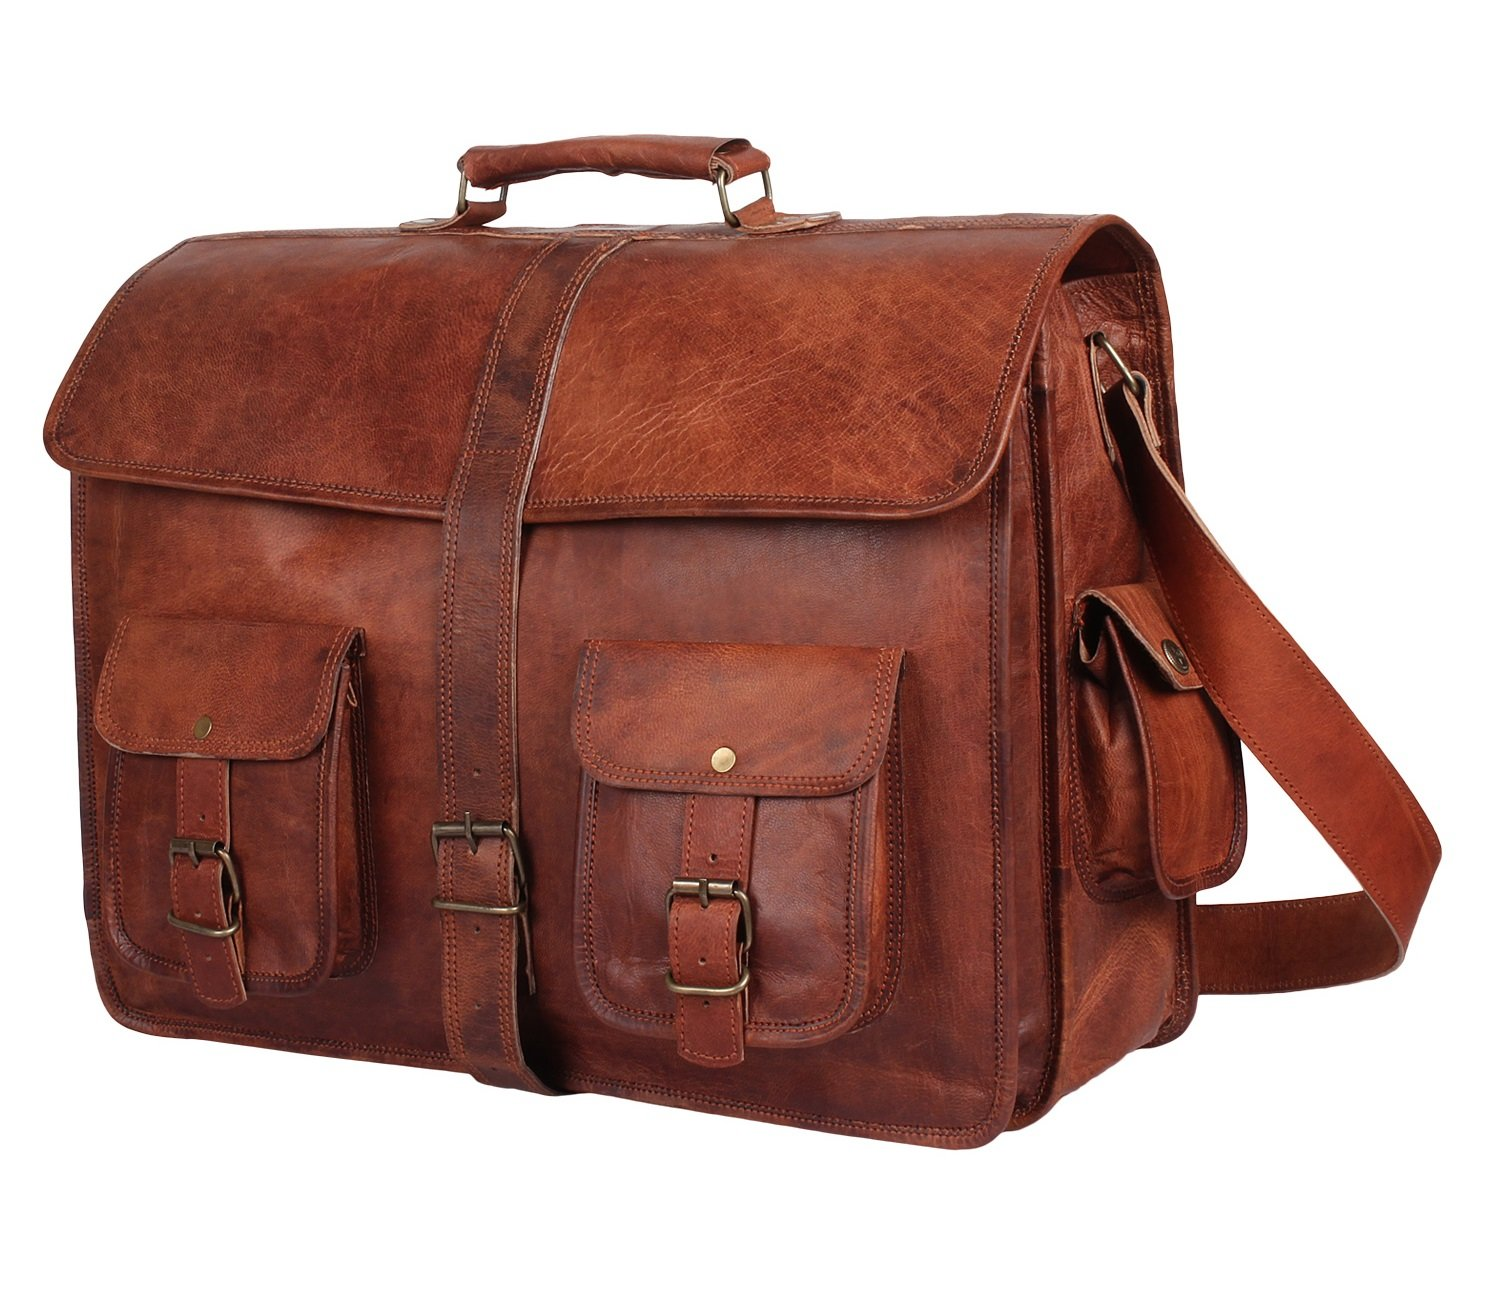 Genuine Leather Messenger Bag for Men - Computer Satchal By Rustic Town (Style 1)